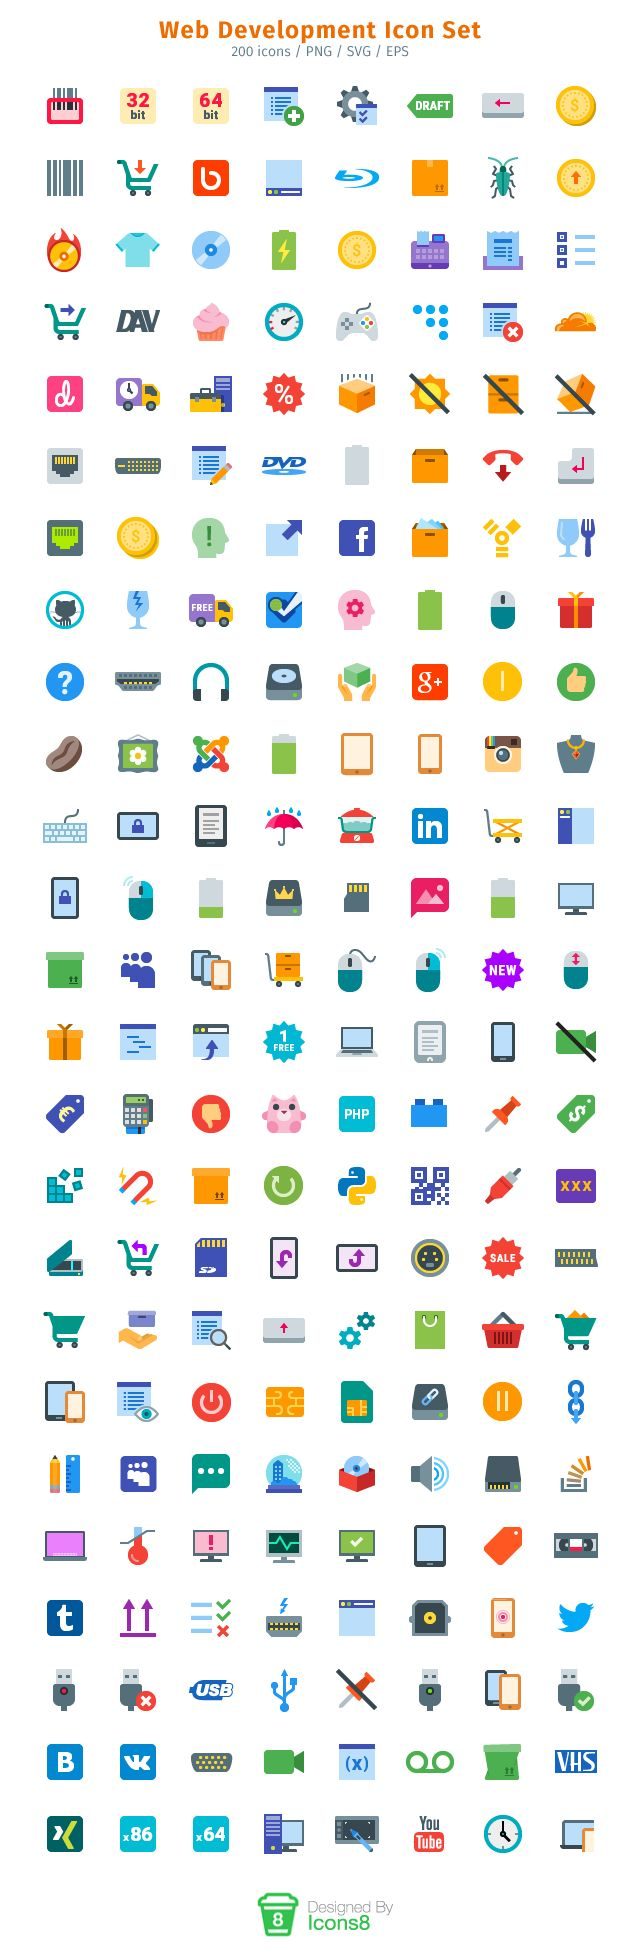 web development icon set there are 200 beautiful icons in this icon set the